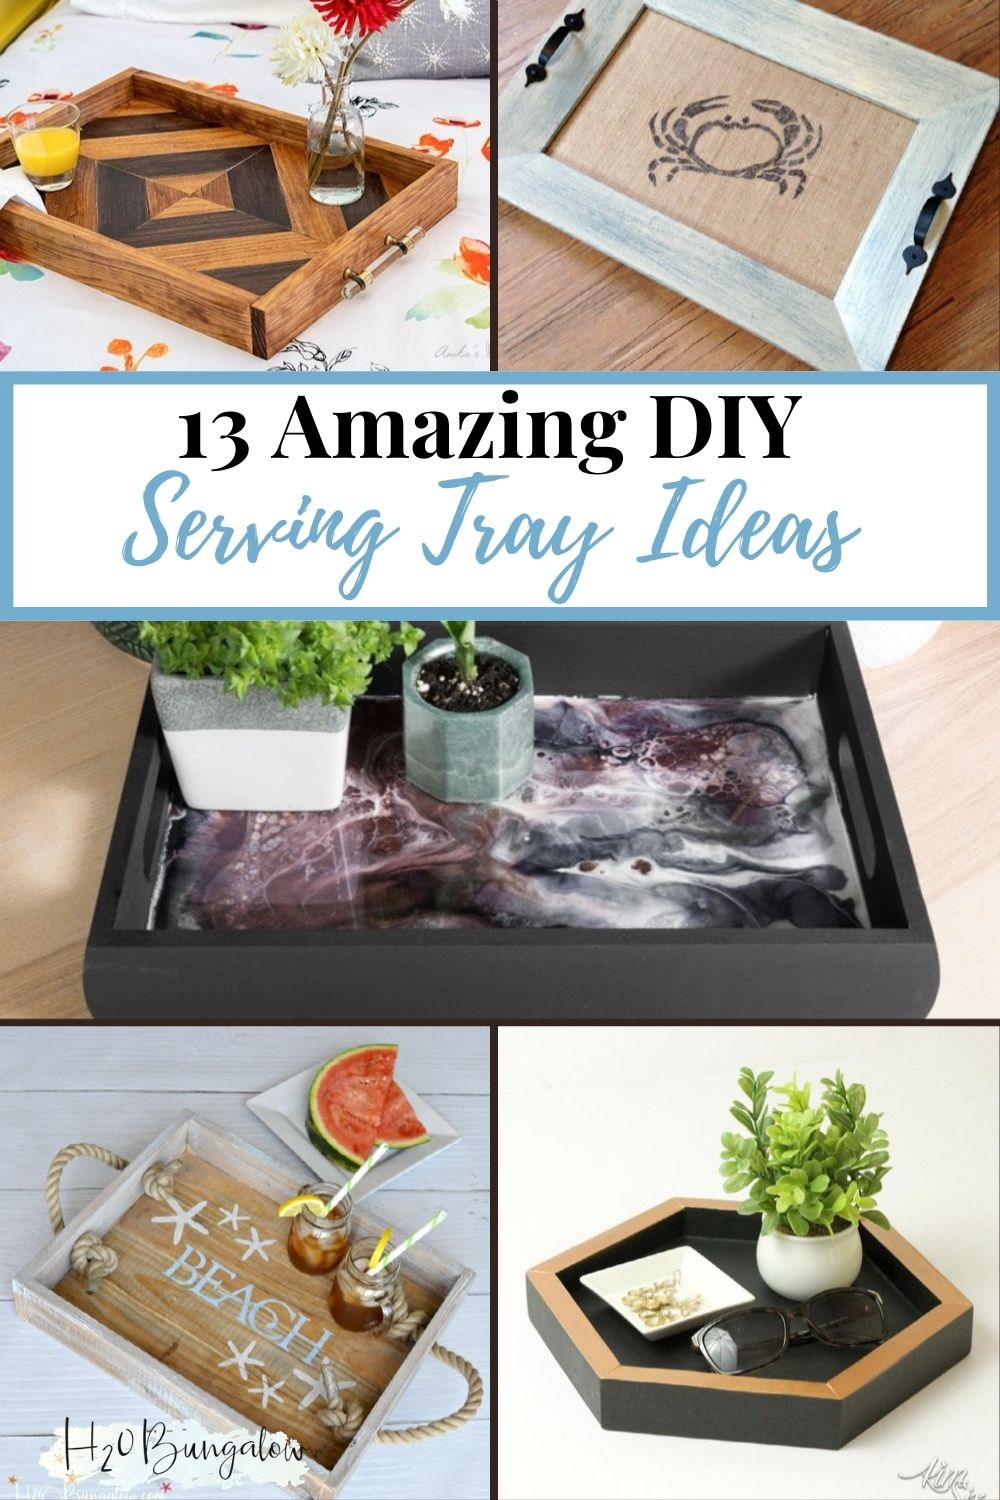 image collage of DIY serving tray ideas with text overlay